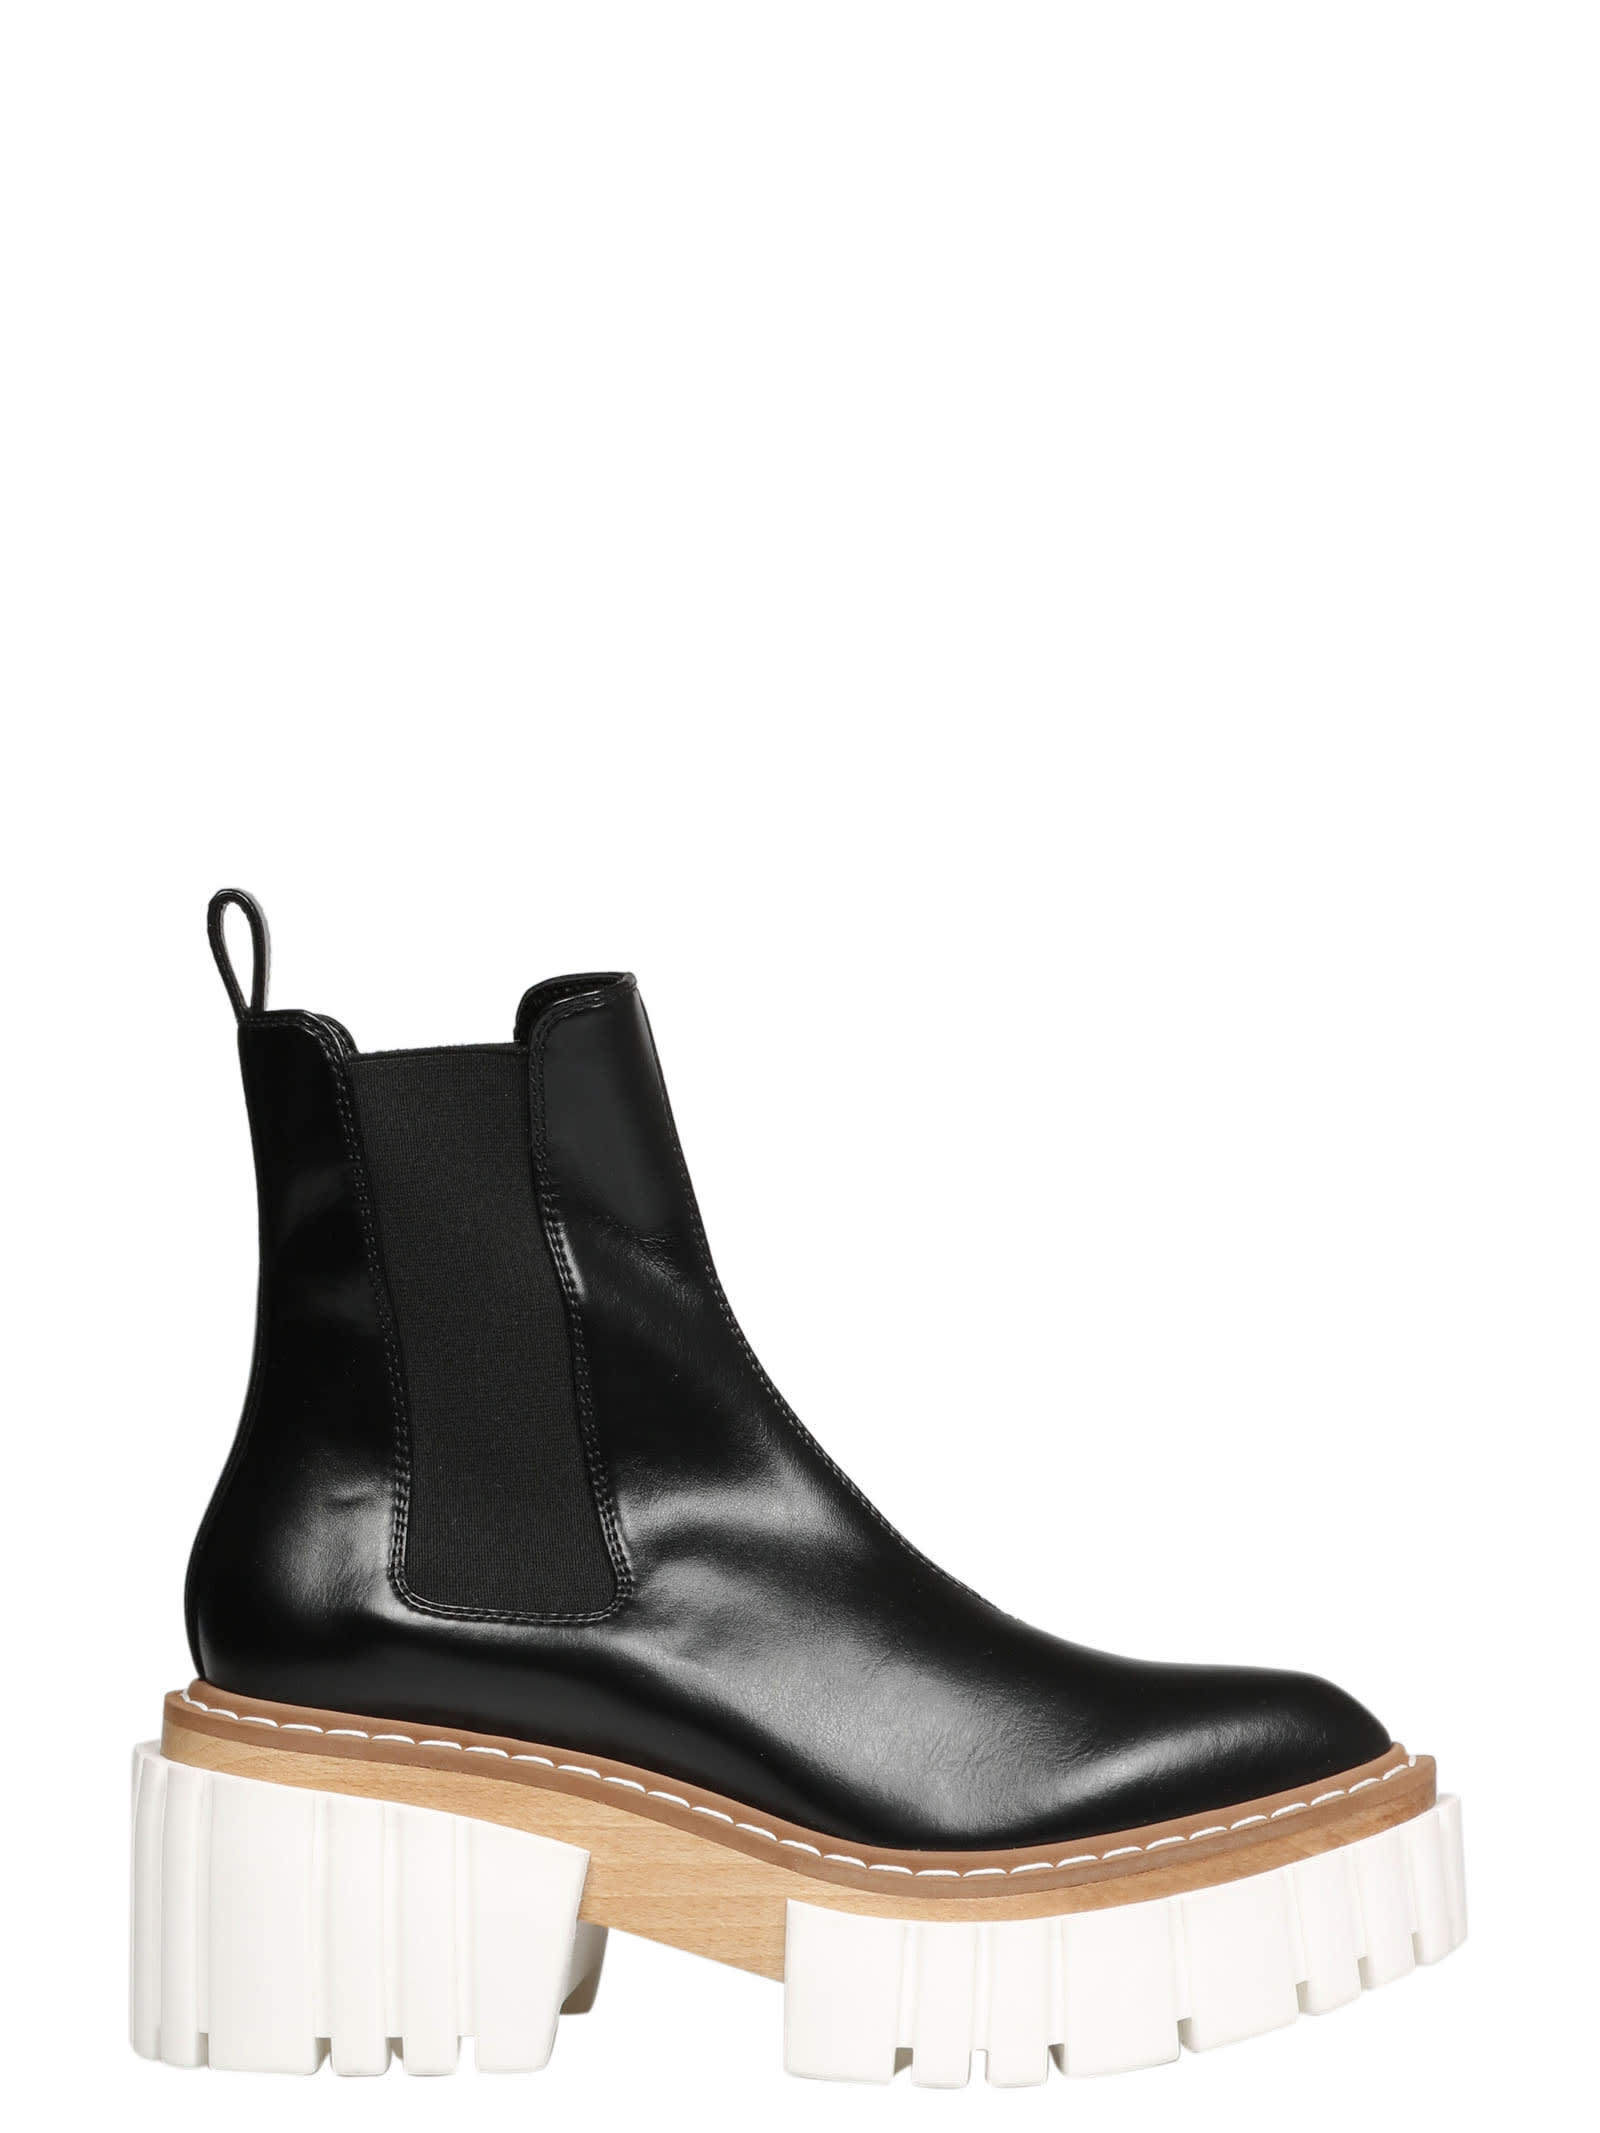 STELLA MCCARTNEY EMILIE CHELSEA BOOT